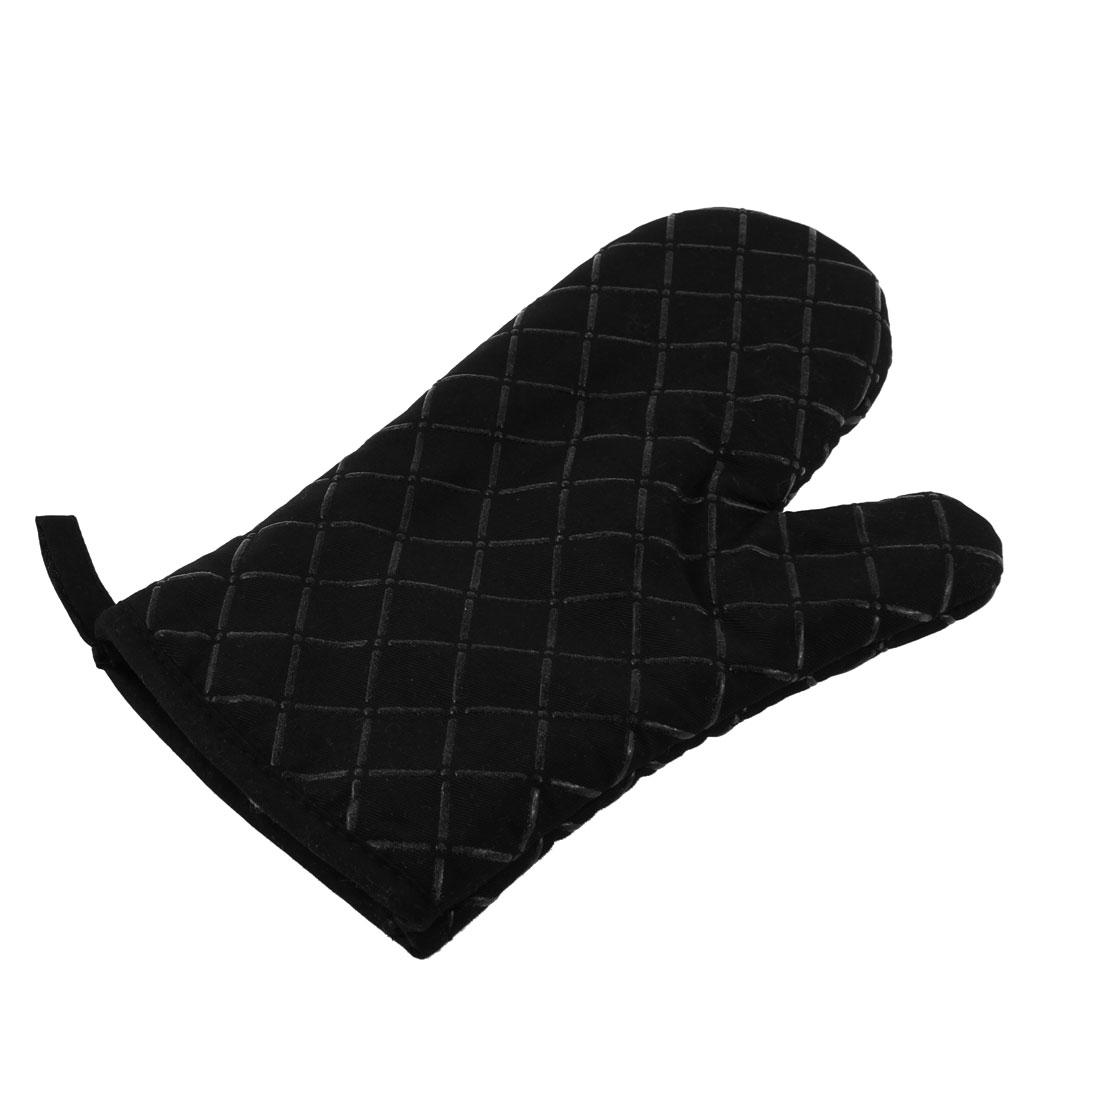 Kitchen Microwave Oven Baking Cross Pattern Heat Resistance Mitten Glove Black